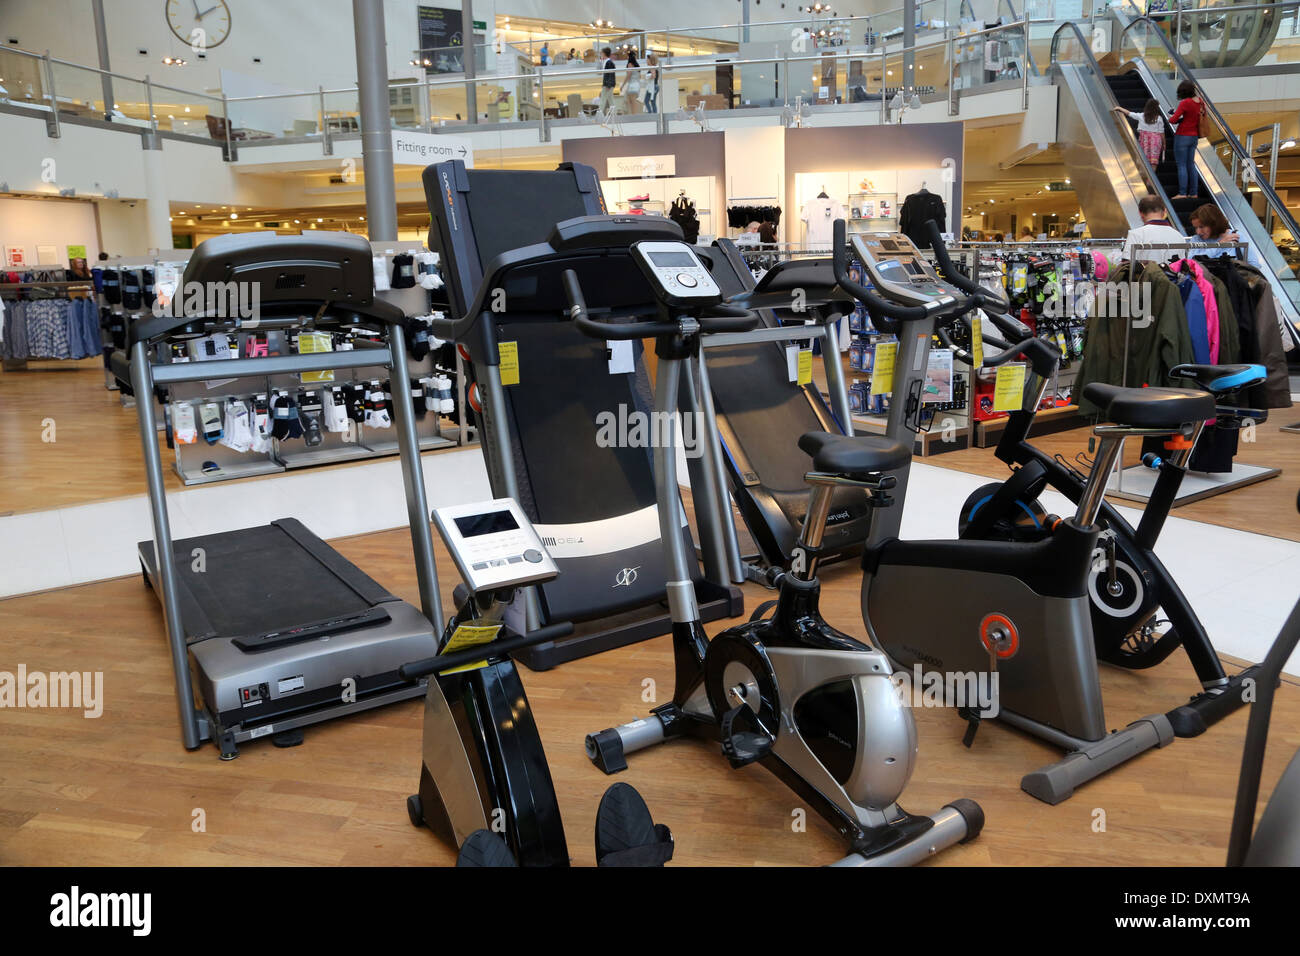 Kingston Upon Thames Surrey John Lewis Store Sports Equipment Cycling Machines, Treadmills And Rowing Machine - Stock Image